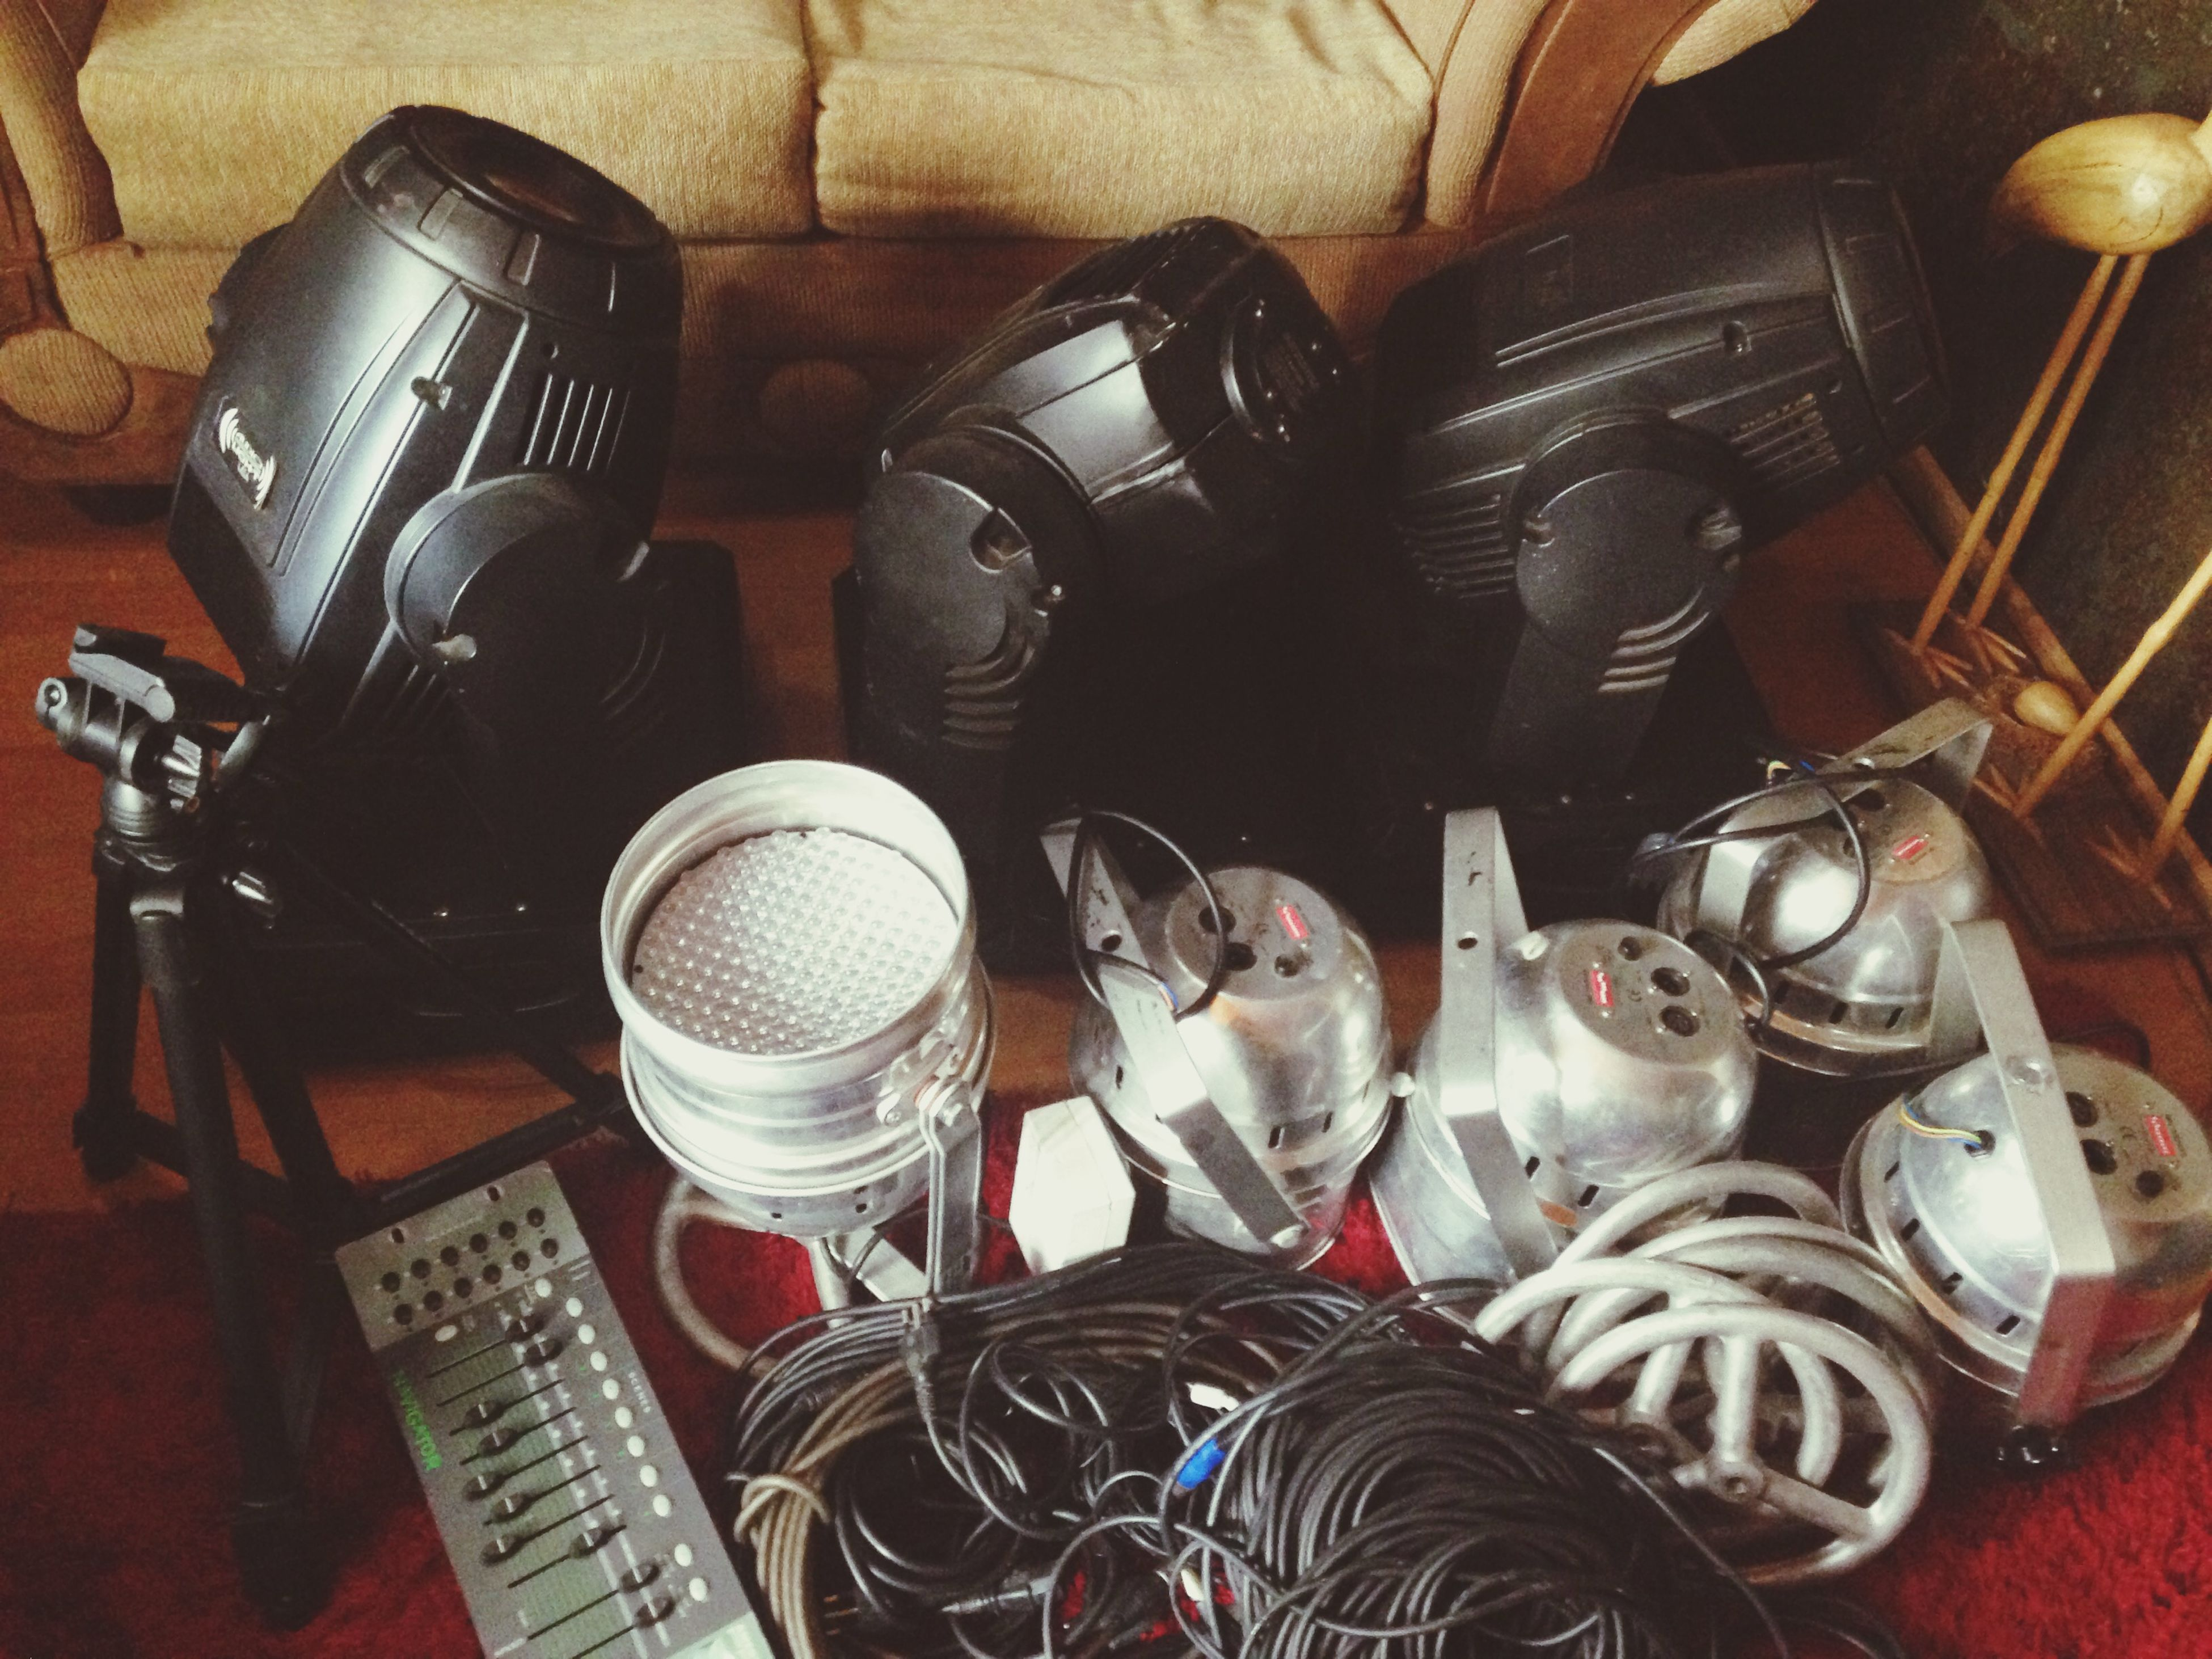 indoors, high angle view, still life, table, technology, bottle, no people, container, machinery, stack, variation, large group of objects, close-up, equipment, food and drink, old-fashioned, industry, work tool, home interior, retro styled